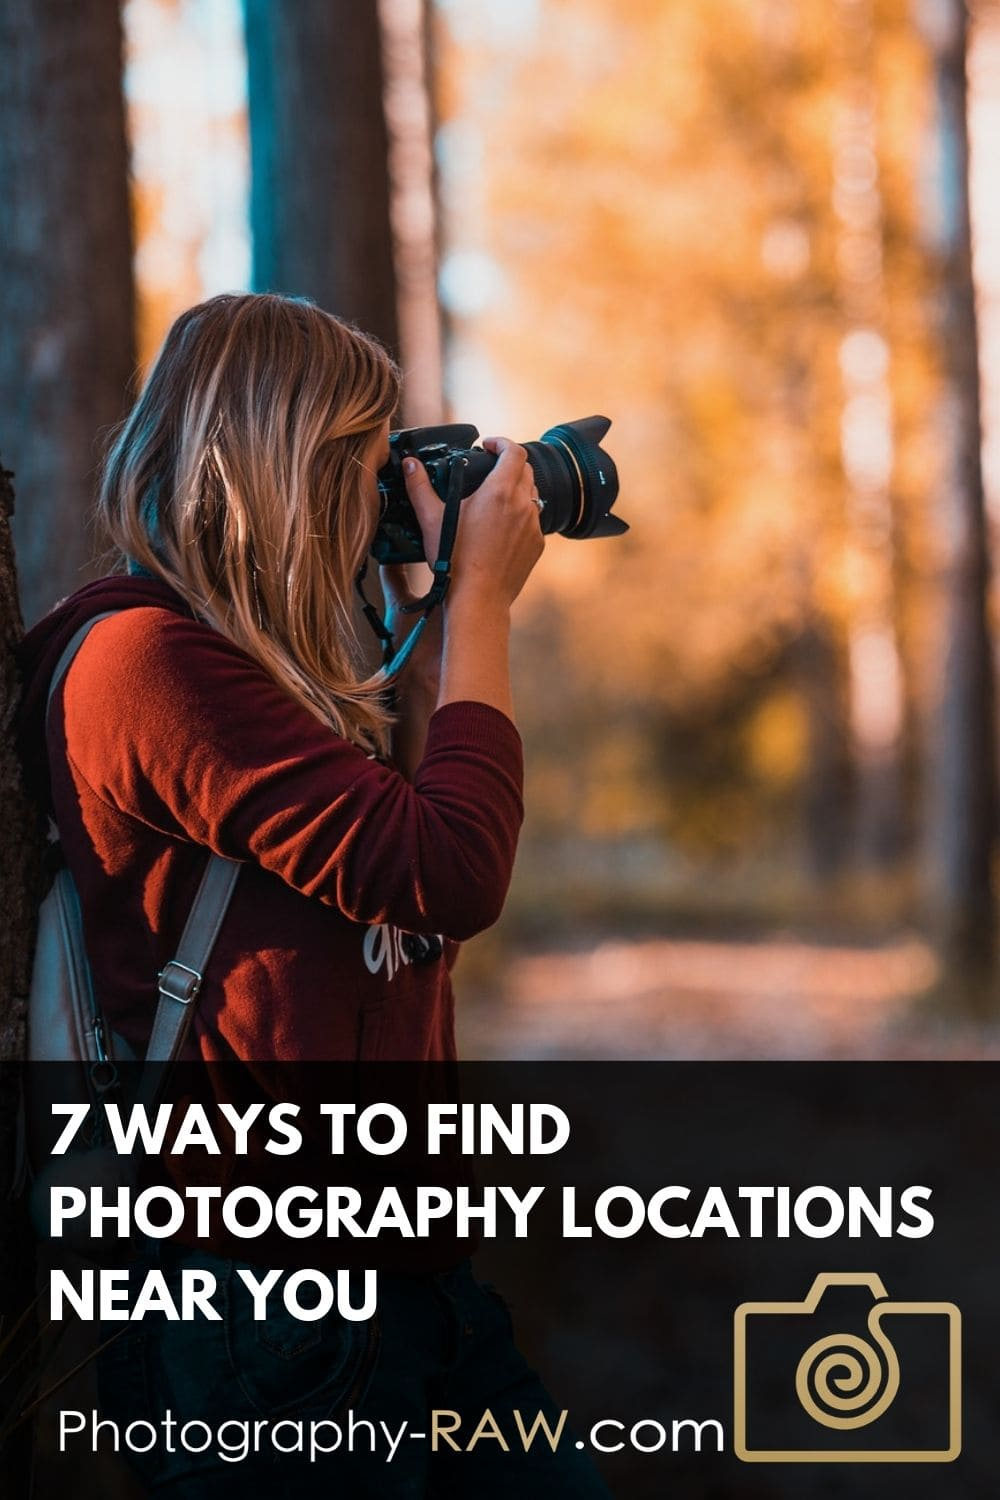 7 Ways to Find Photography Locations Near You